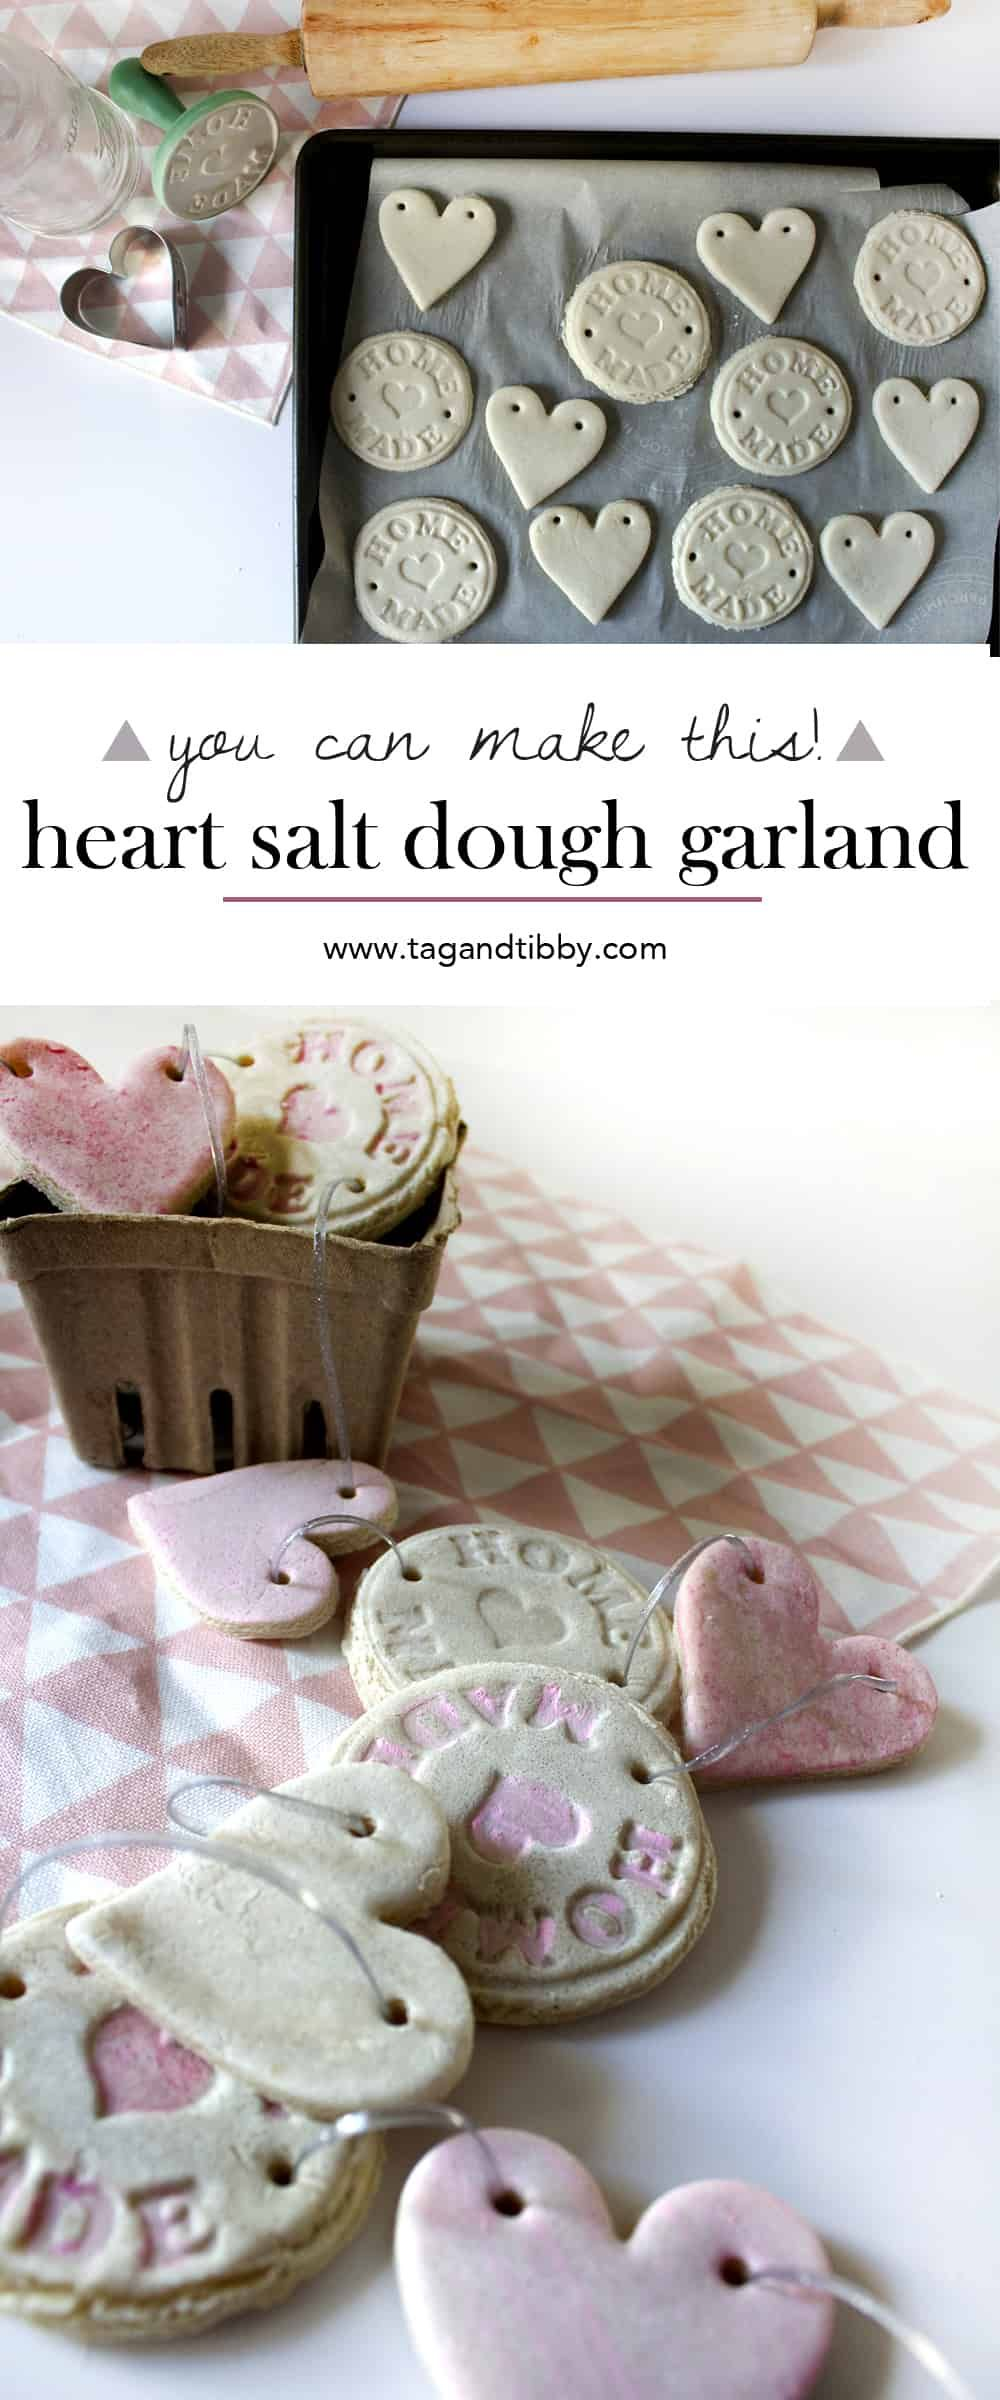 Valentine Crafts for Adults: 30+ Beautiful Valentine's Day Projects